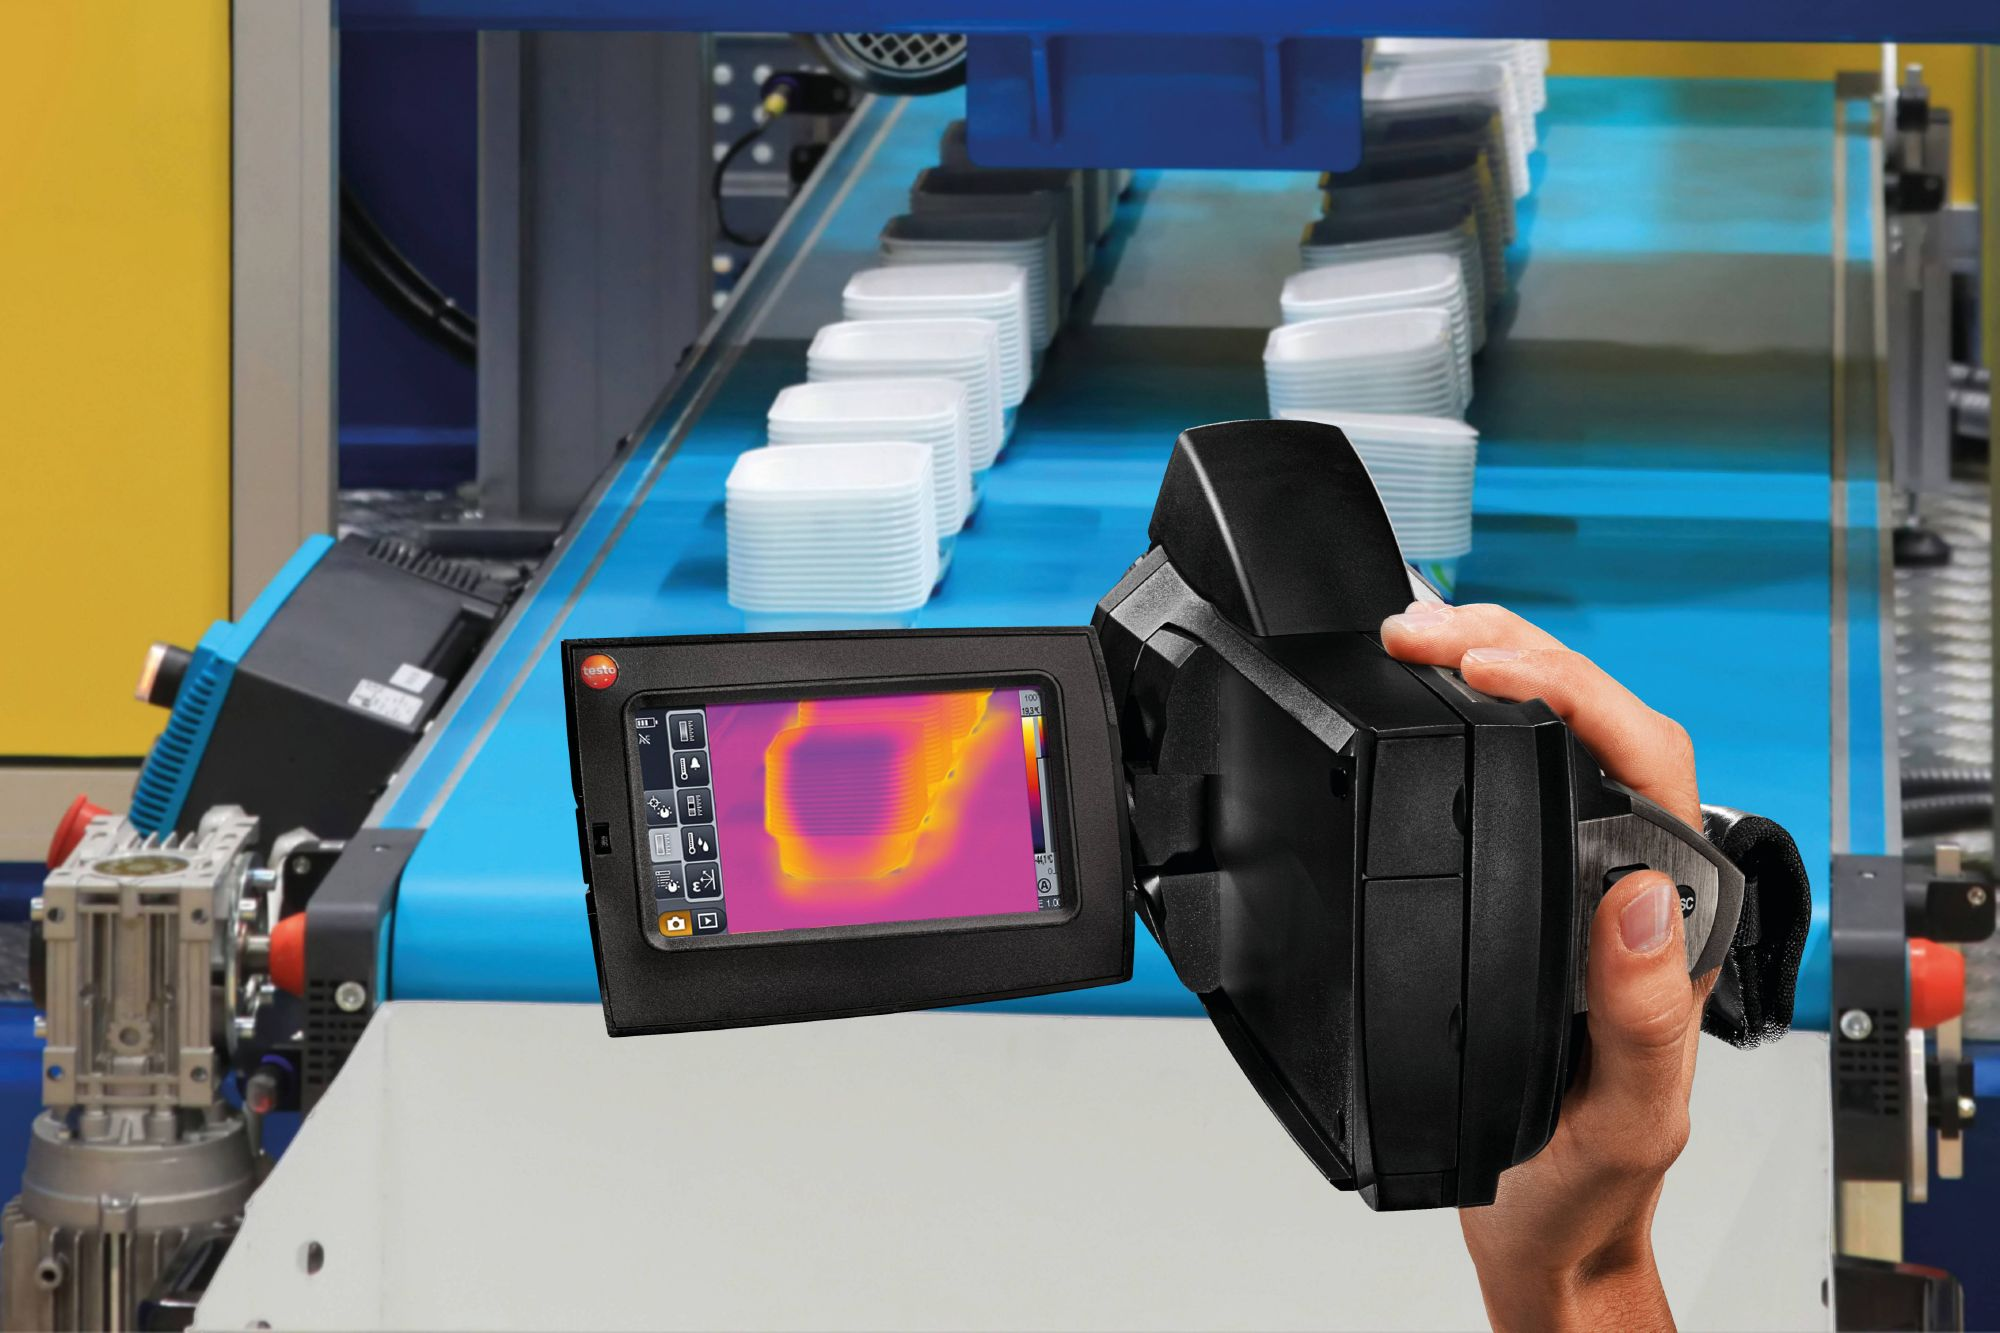 Quality control and assurance with thermal imagers